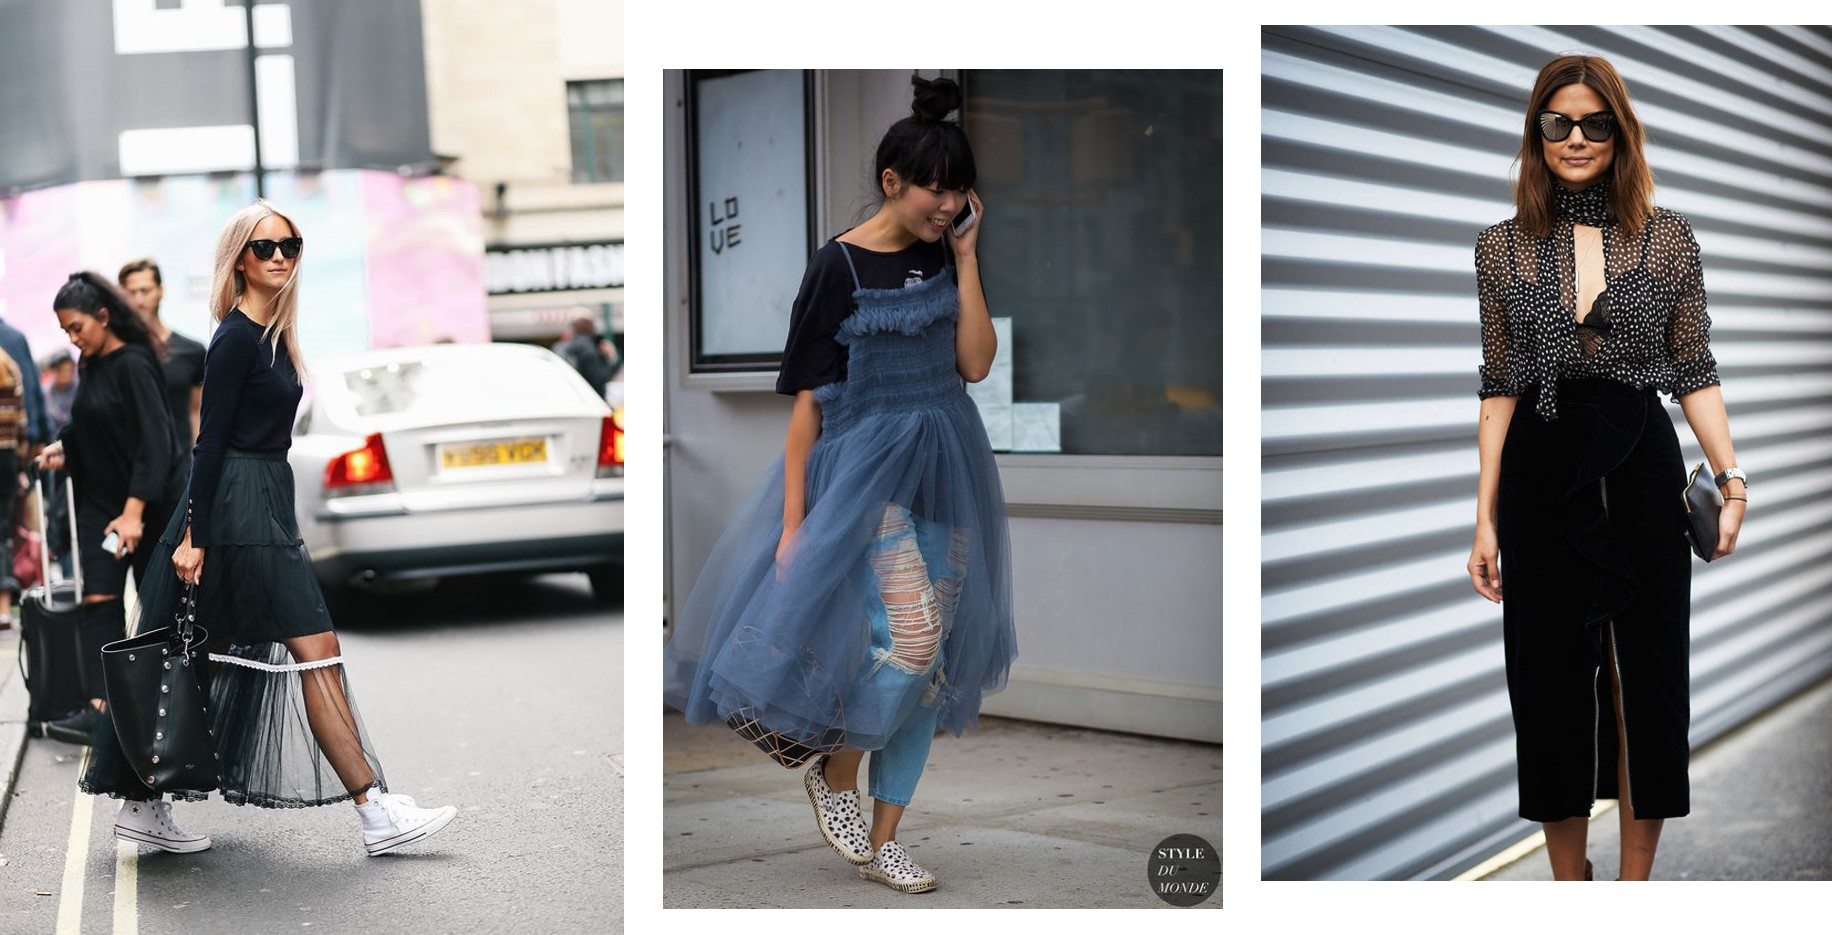 Tulle fabric in fashion – Tulle clothing for summer season